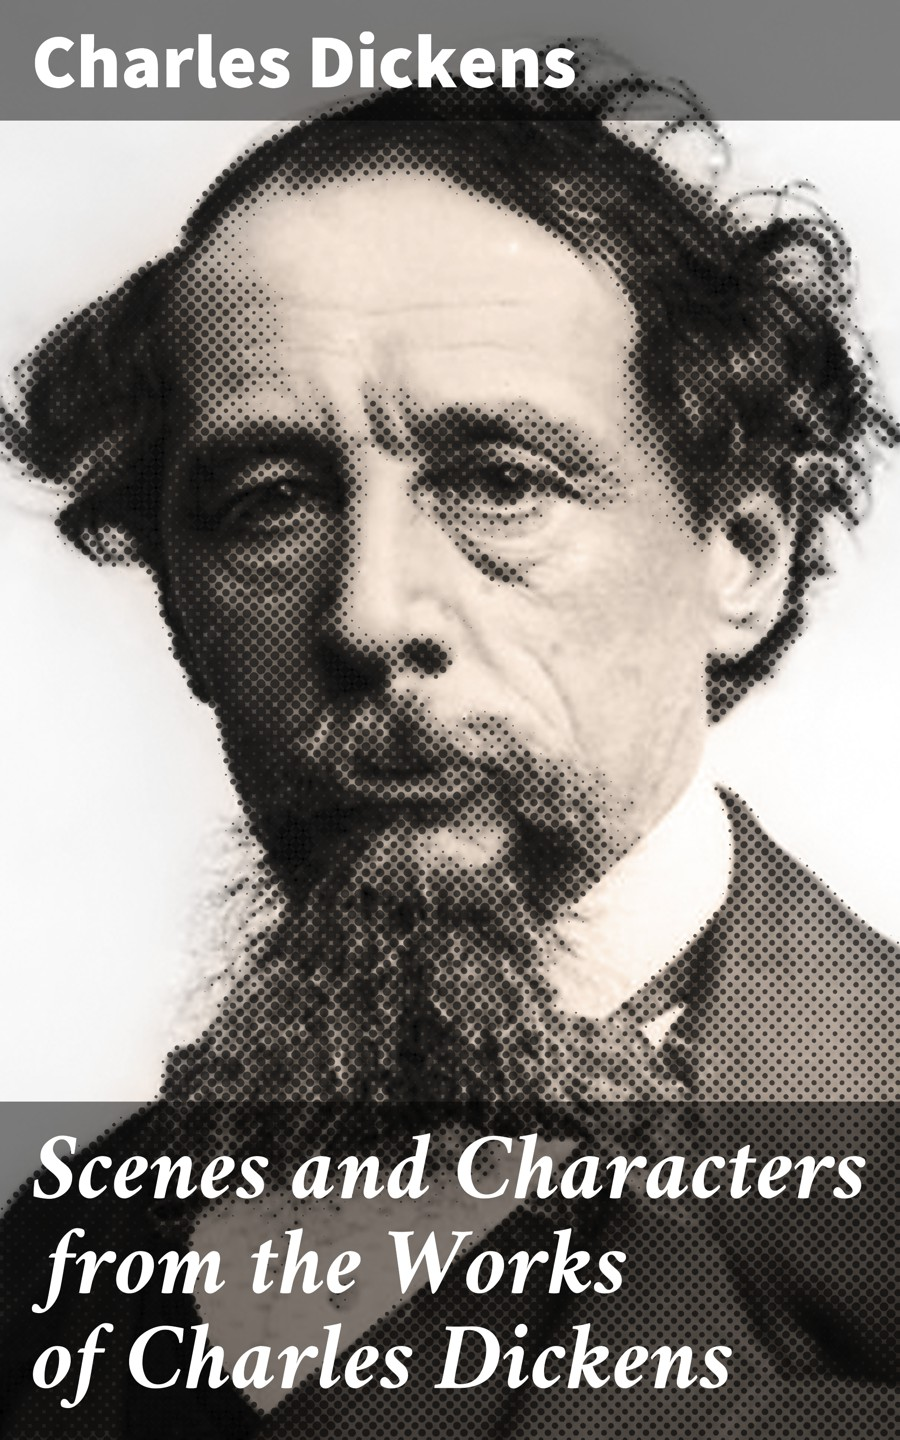 Charles 1812-1870 Dickens Scenes and Characters from the Works of Charles Dickens f t marzials life of charles dickens